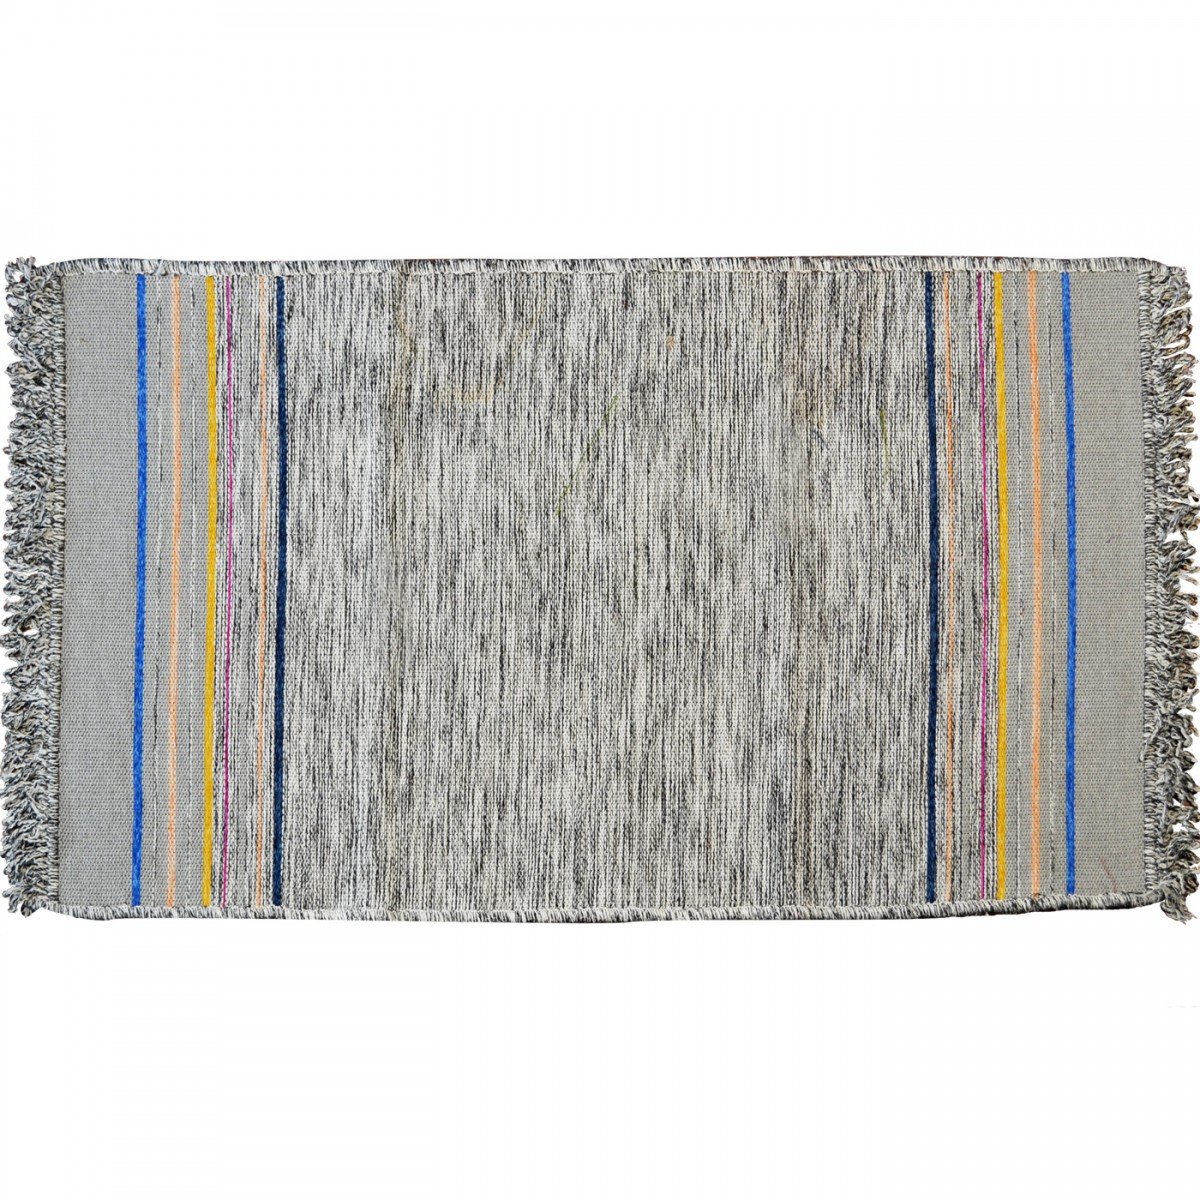 Irregular End Stripes Rug, Pebbles Grey